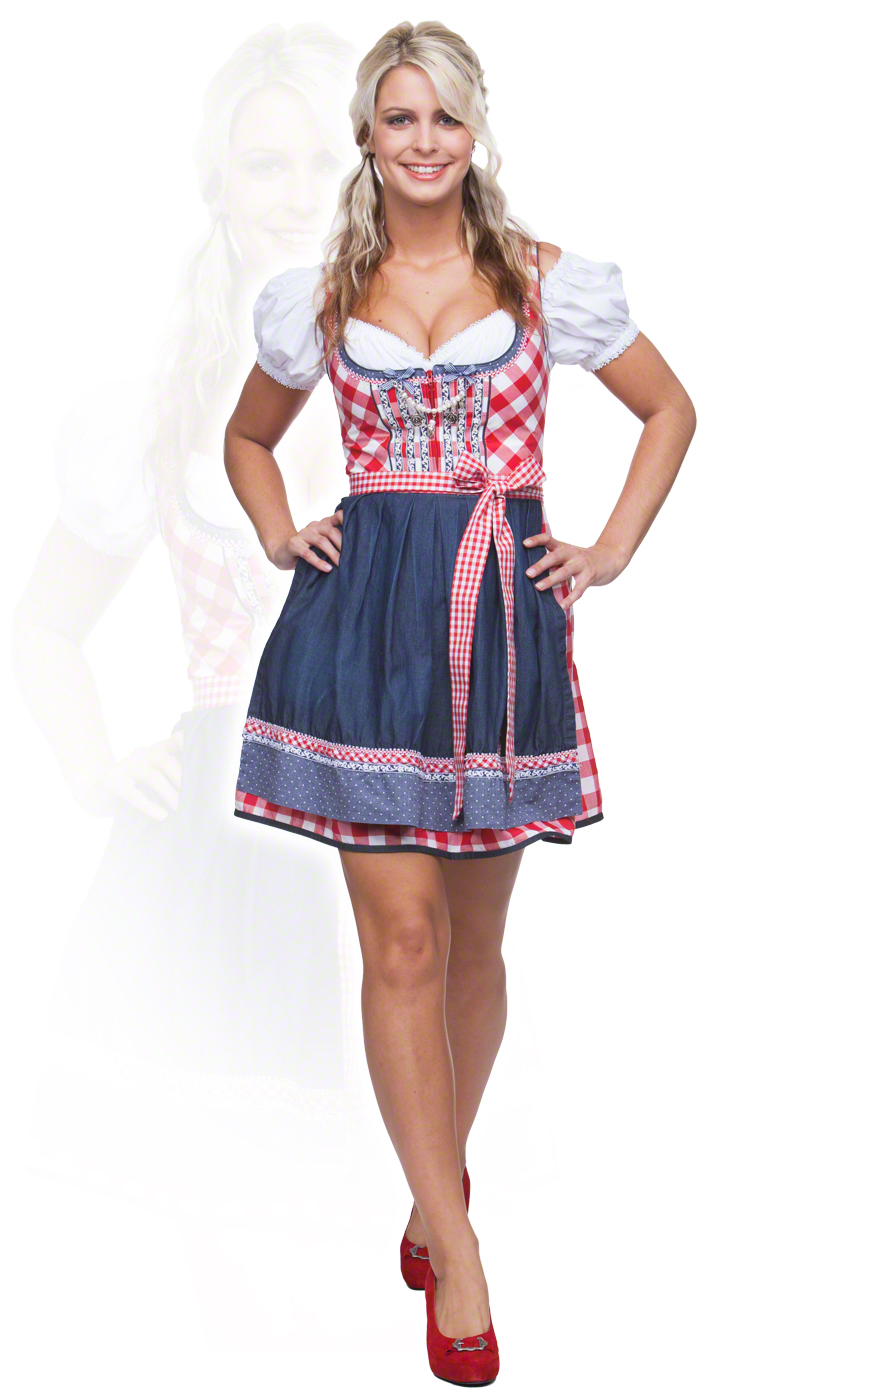 oktoberfest fashion trends 2014 for her oktoberfest. Black Bedroom Furniture Sets. Home Design Ideas